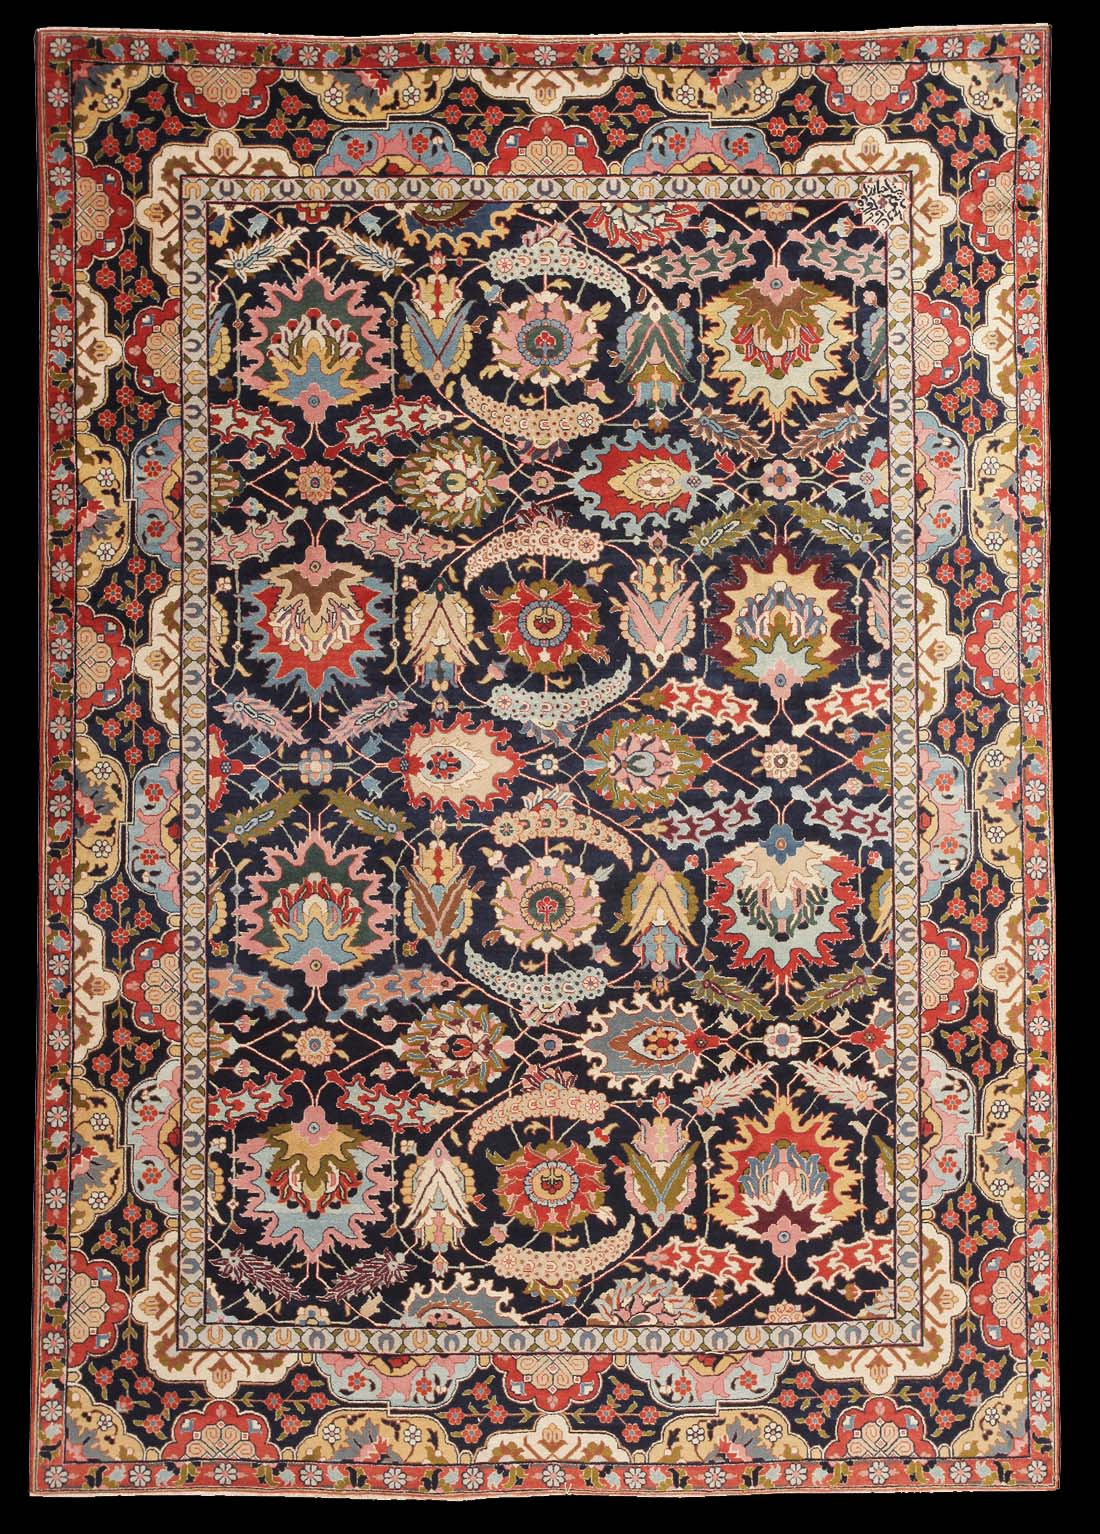 Antique Tabriz Carpet With An Allover Design Of Flame